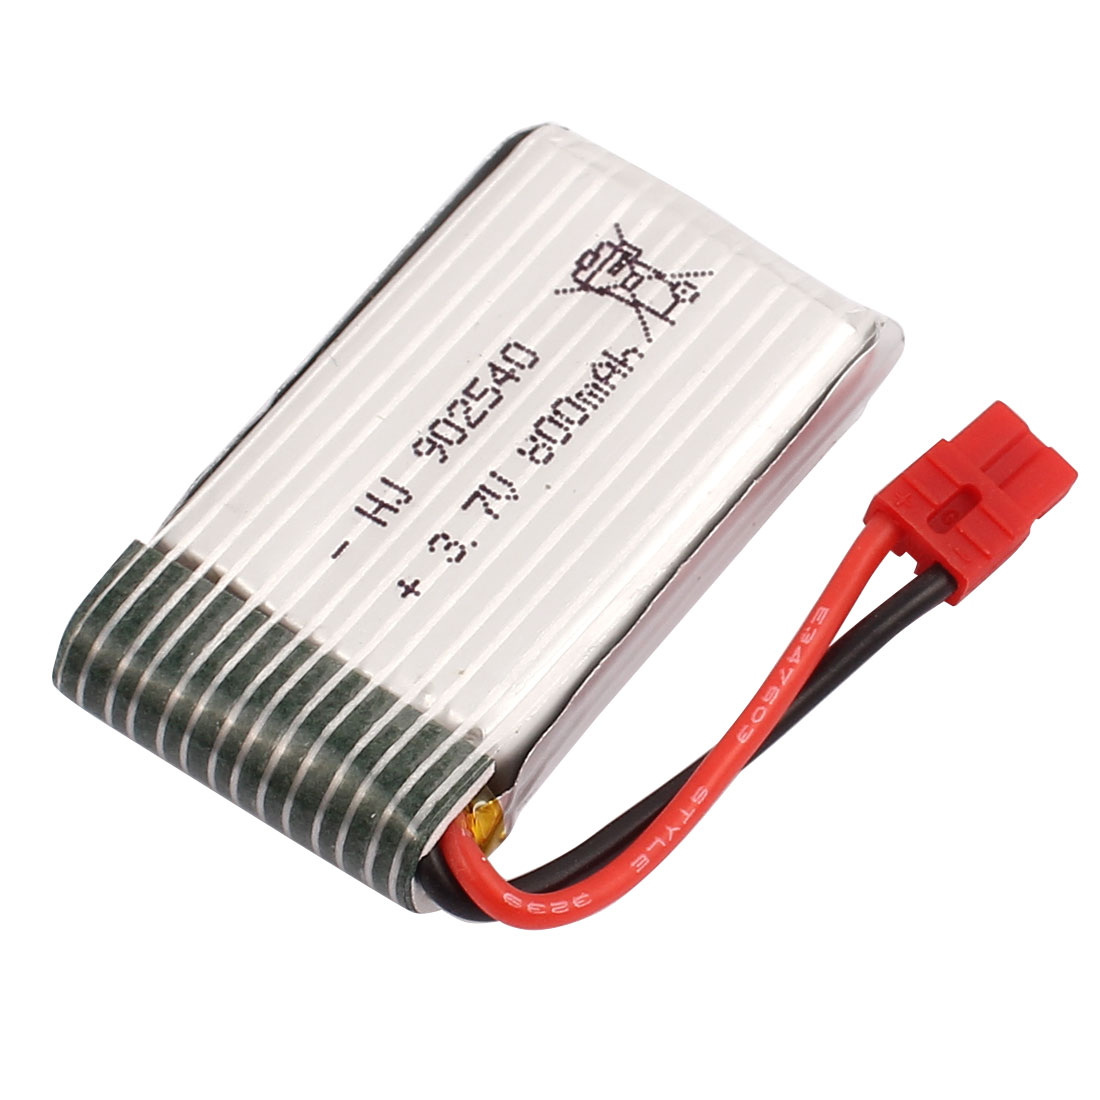 3.7V 800mAh Charging Lithium Polymer Li-po Battery XH-4.0 Connector for RC Airplane Aircraft